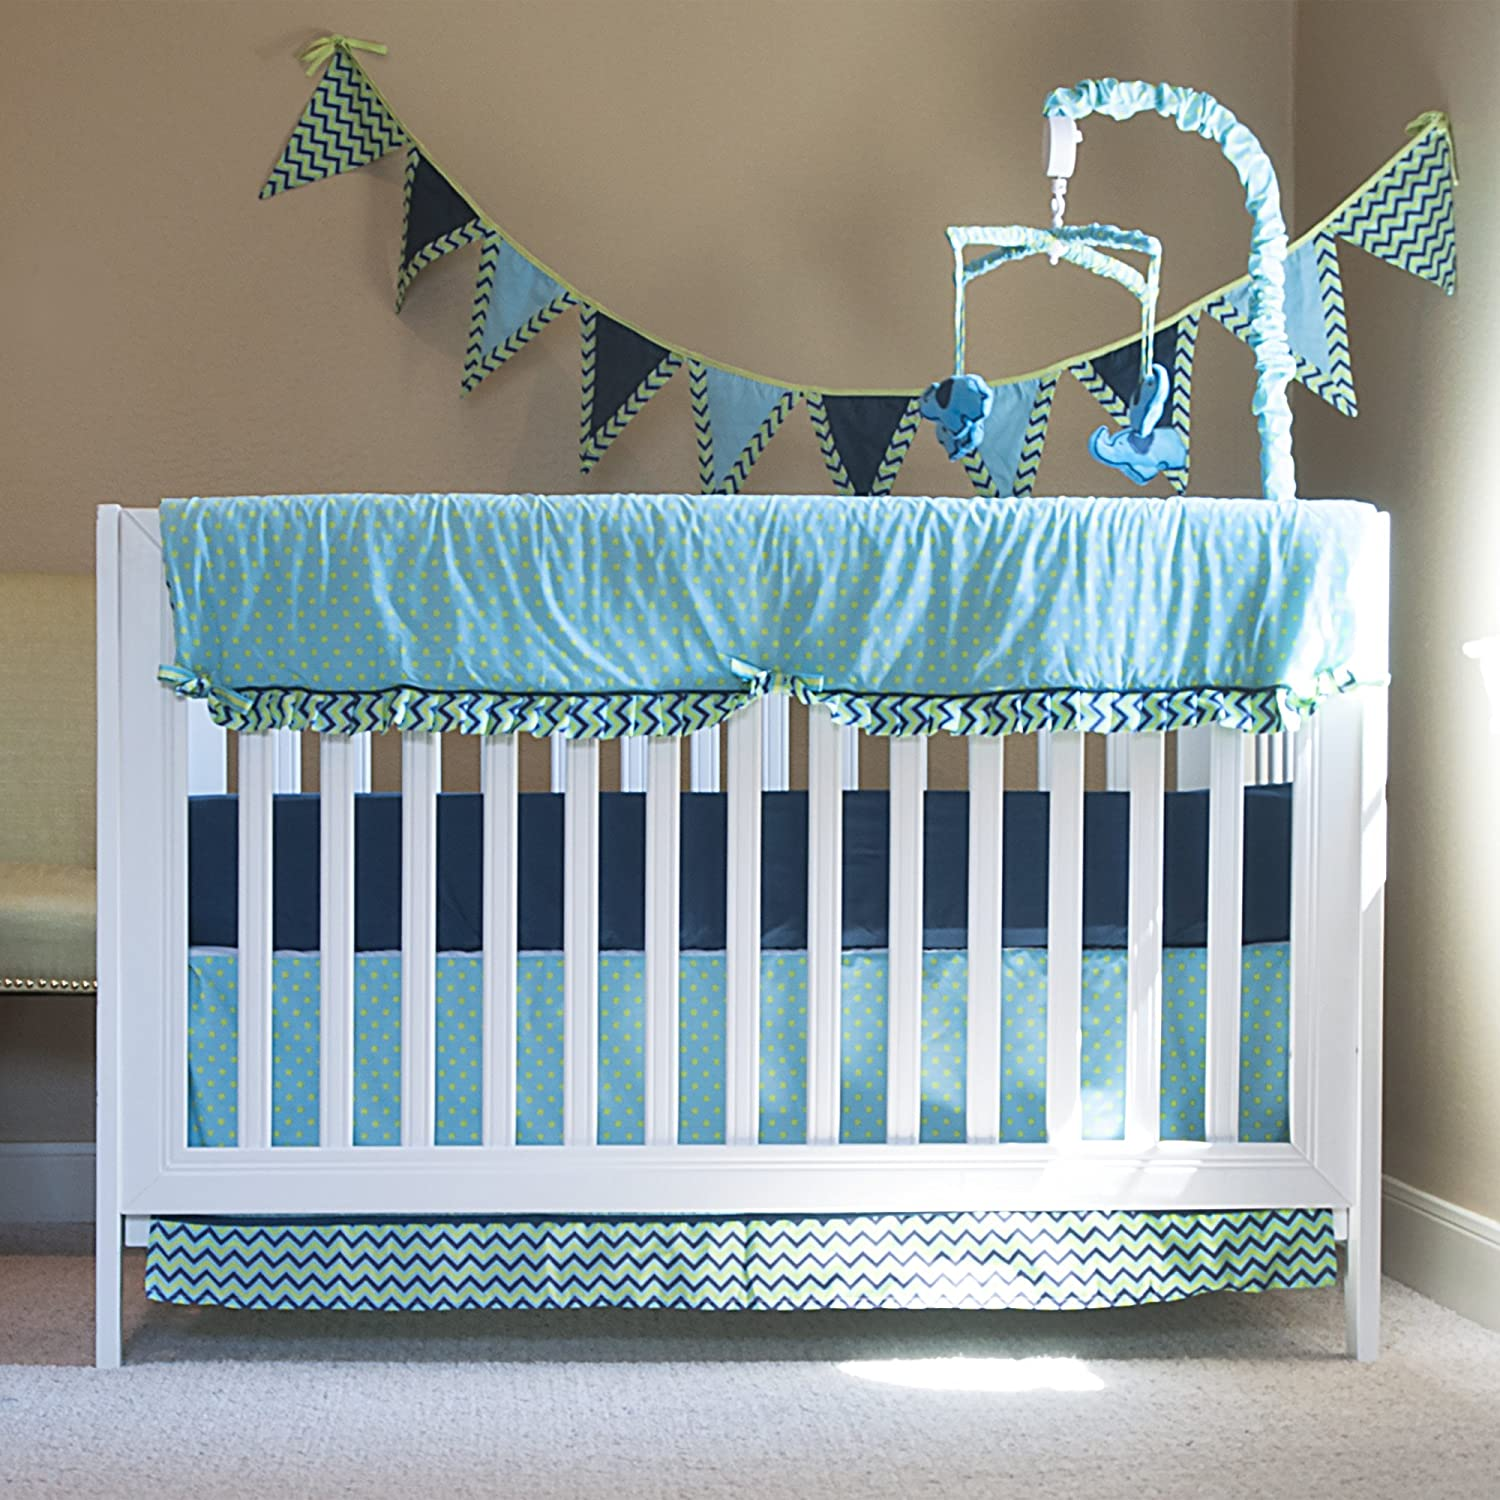 il c teal skirt fullxfull bedding cribs crib boy baby arrows marine